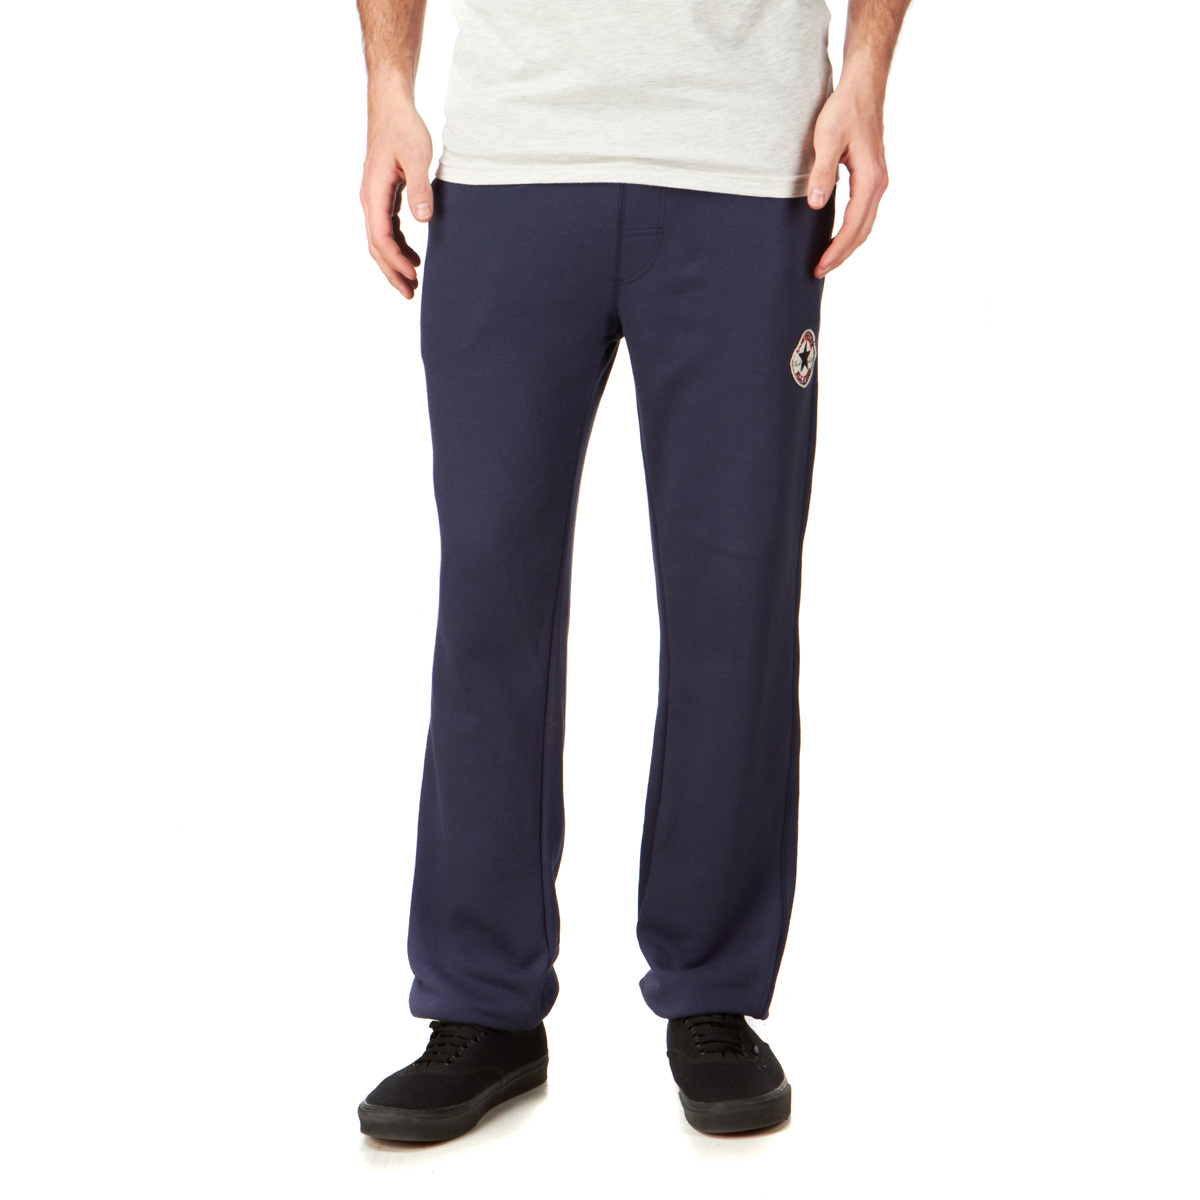 Mens Converse Tracksuit Bottoms